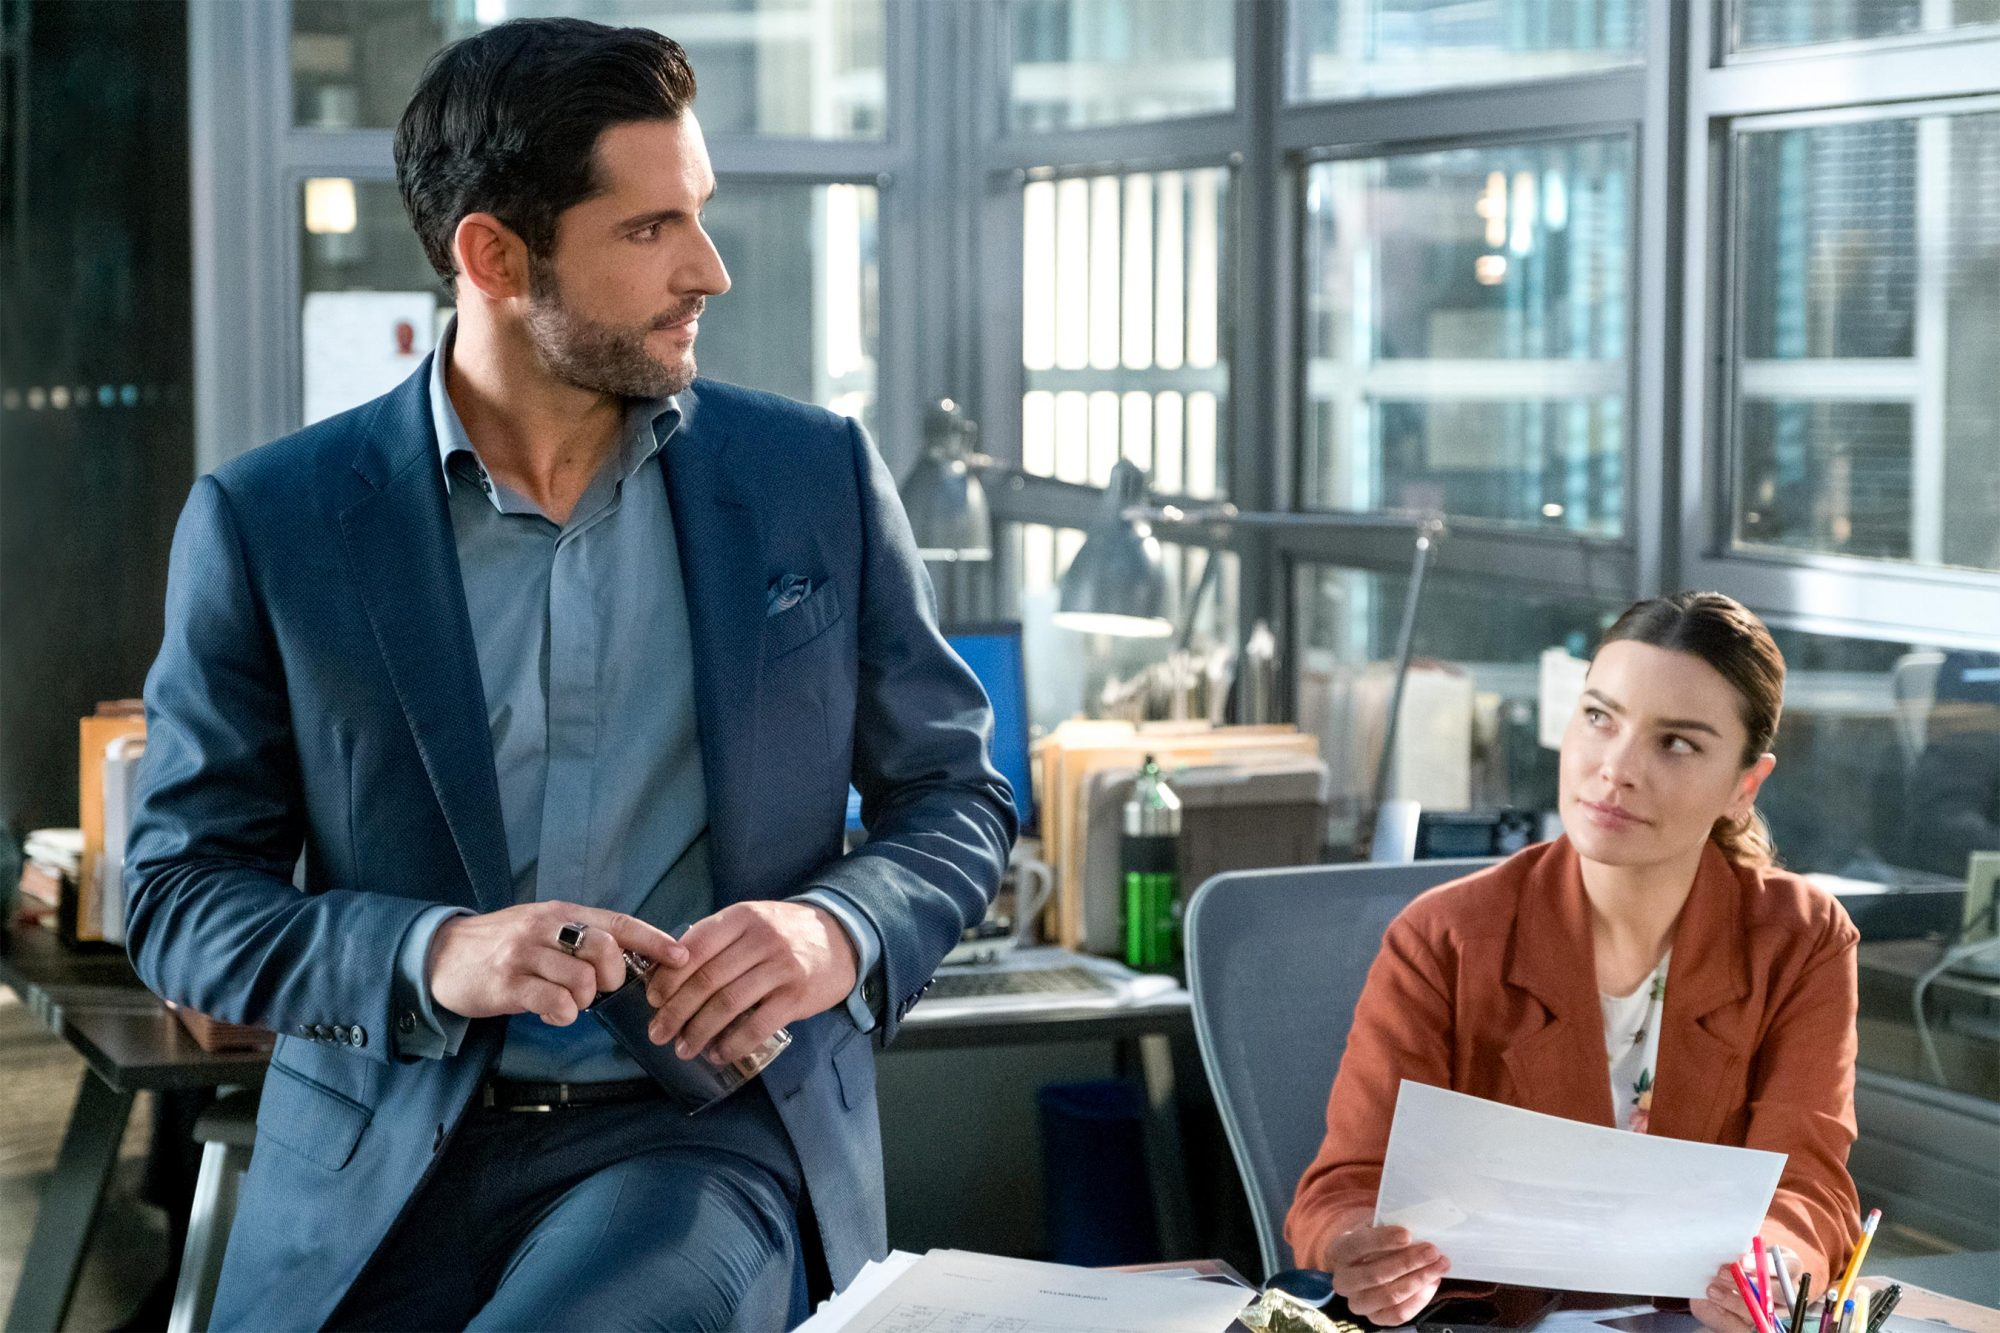 Lucifer Season 4, EPISODE 3 PHOTO CREDIT John P. Fleenor/Netflix PICTURED Tom Ellis, Lauren German